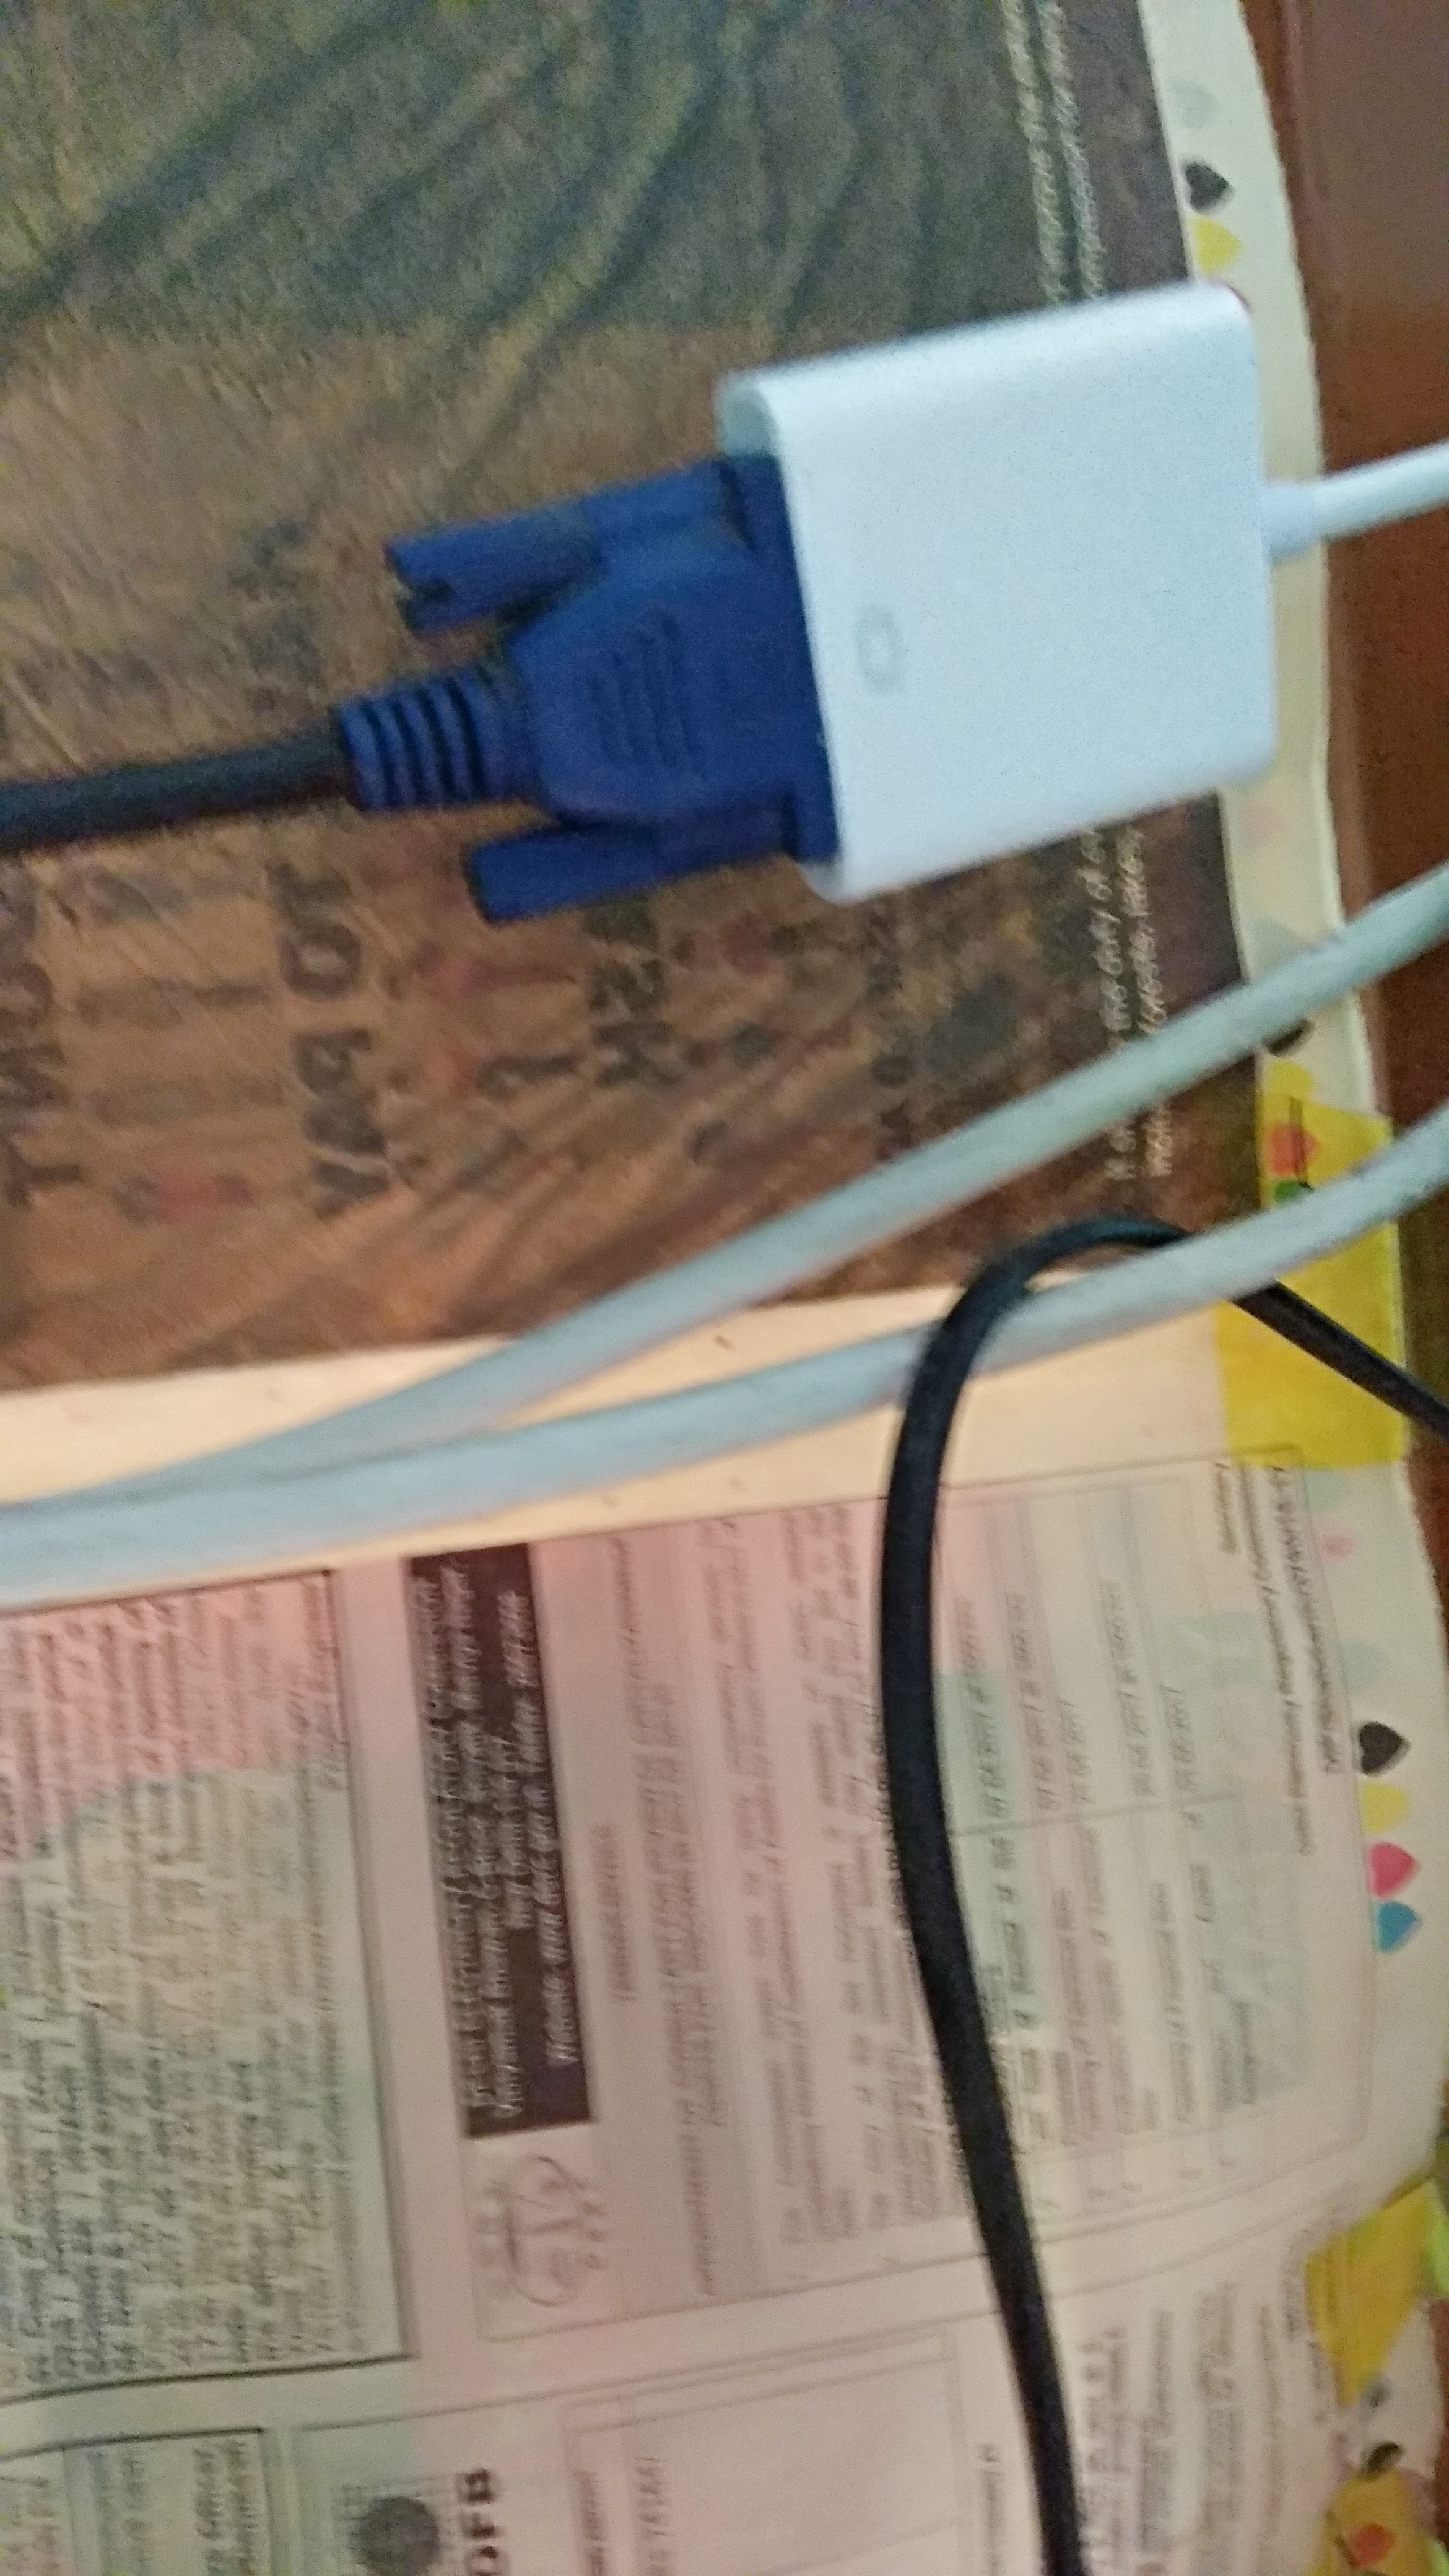 How To Use Monitor As Tv Quora Internet Jack Wiring Plug In Vga End Of Your The Analog Set Up Box Just Like This One